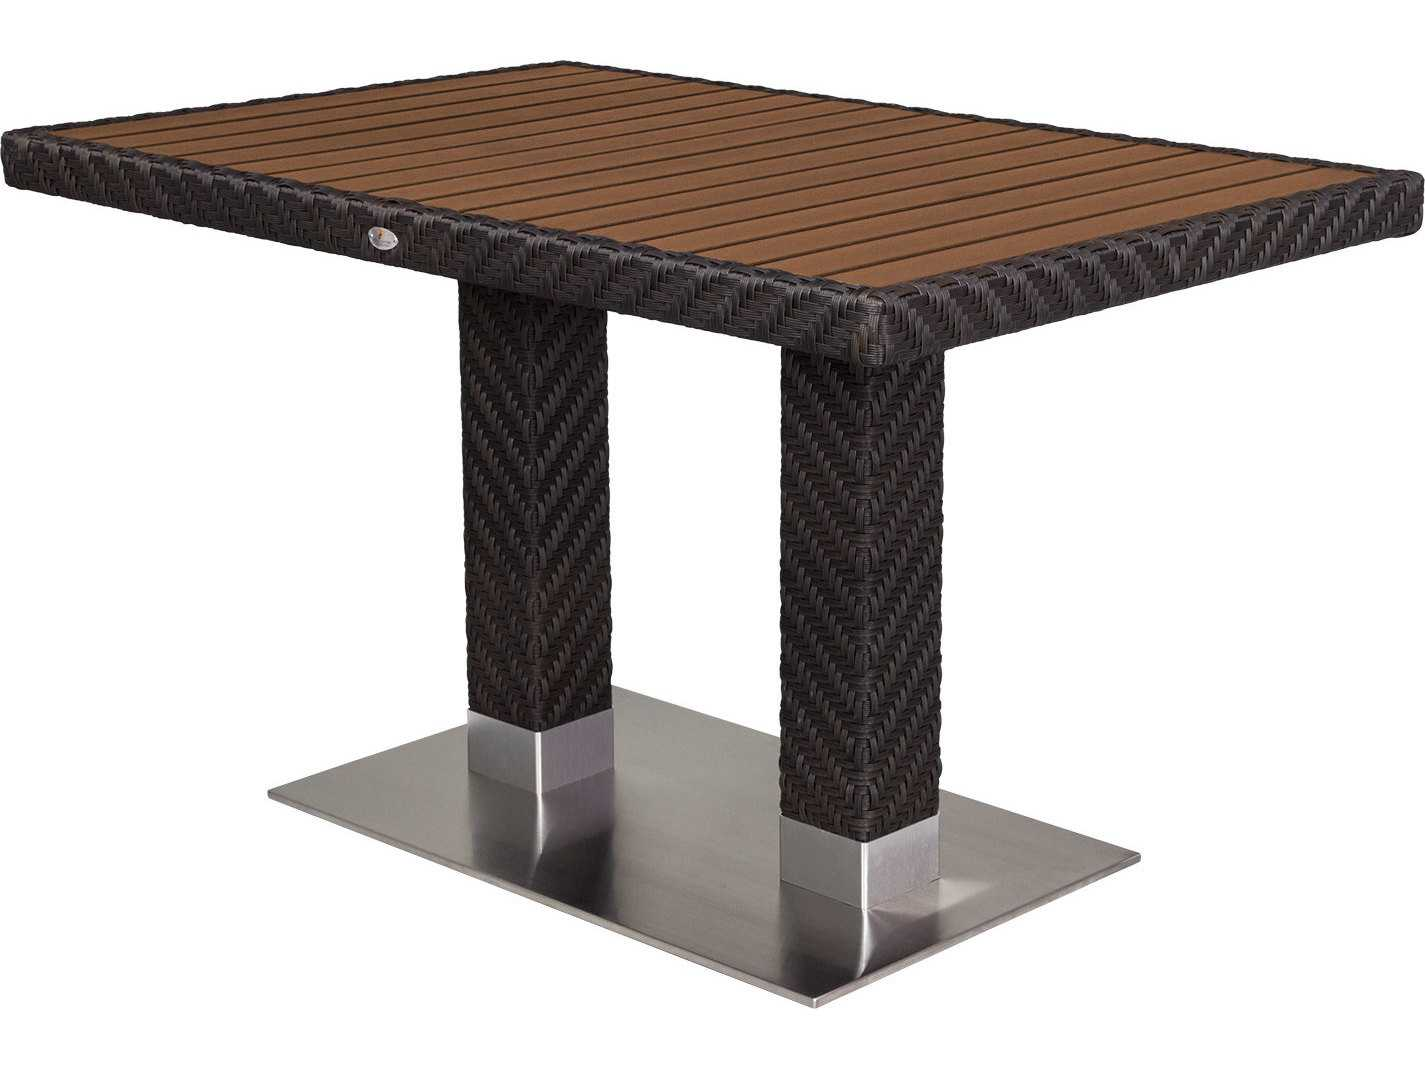 Source Outdoor Furniture Arizona Wicker 48 X 32 Rectangular Dining Table Scsc2206314